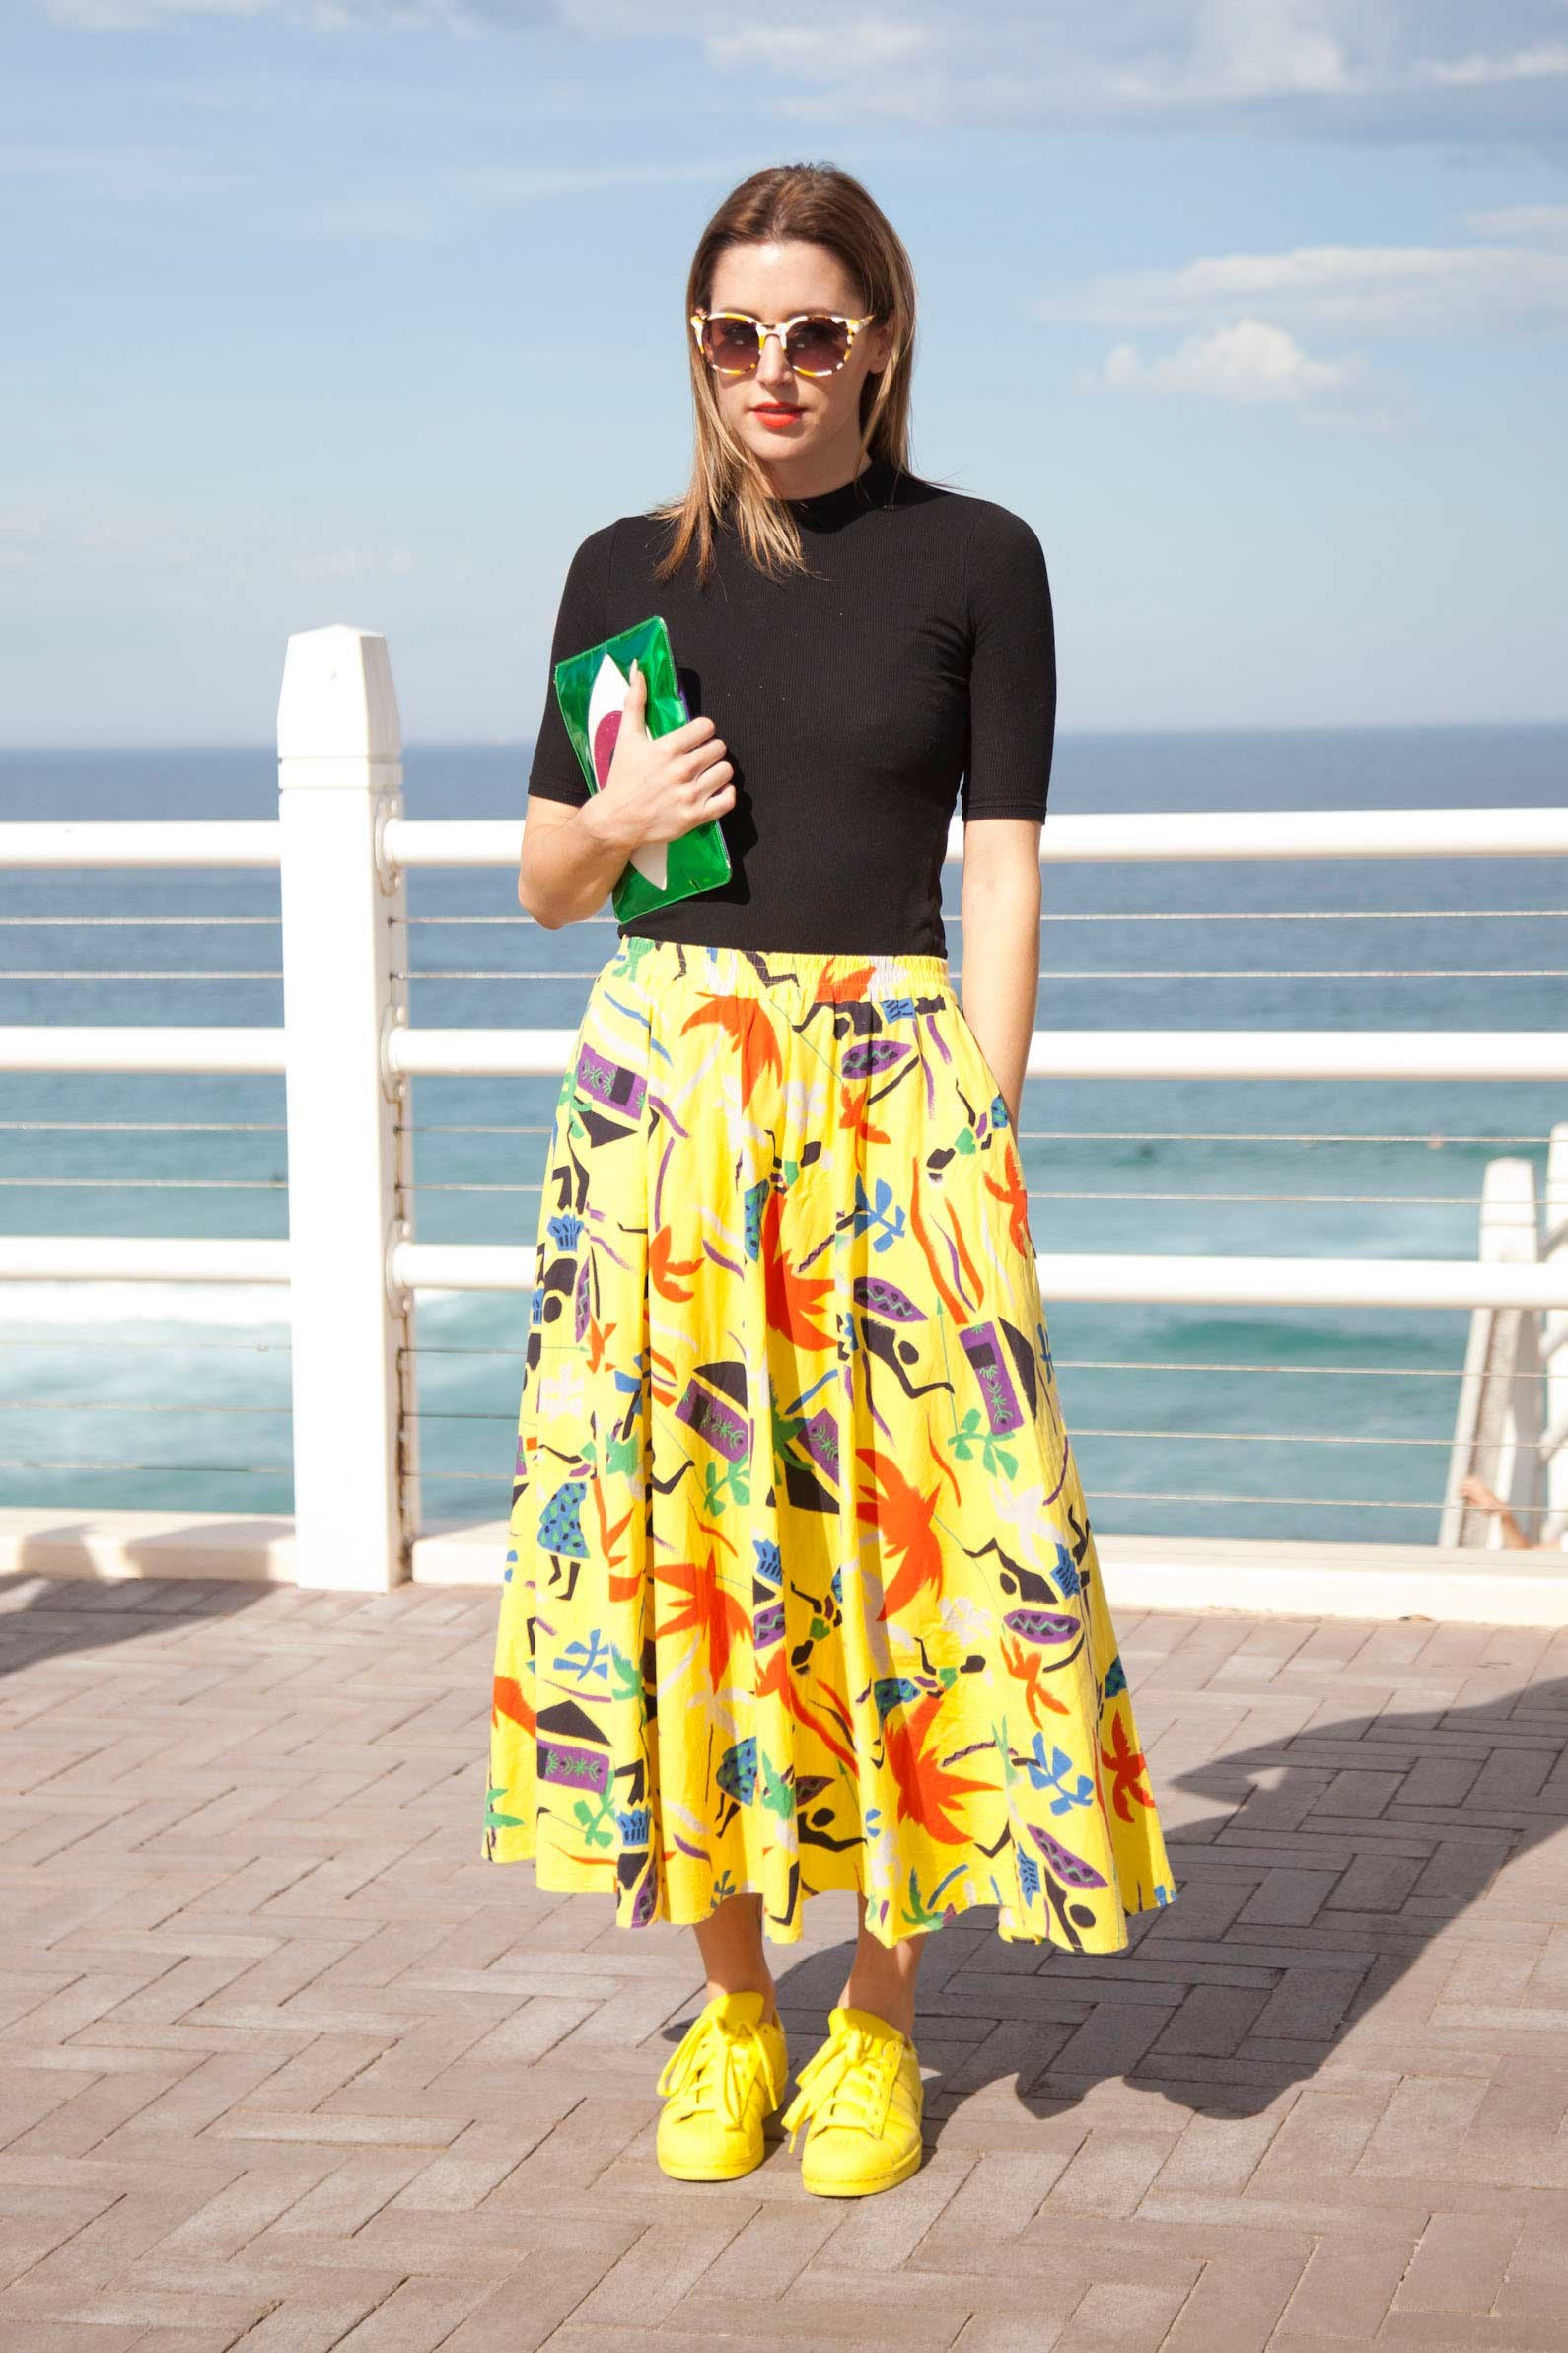 This look is PURE SUNSHINE. From the yellow sneakers right up to the red lips.